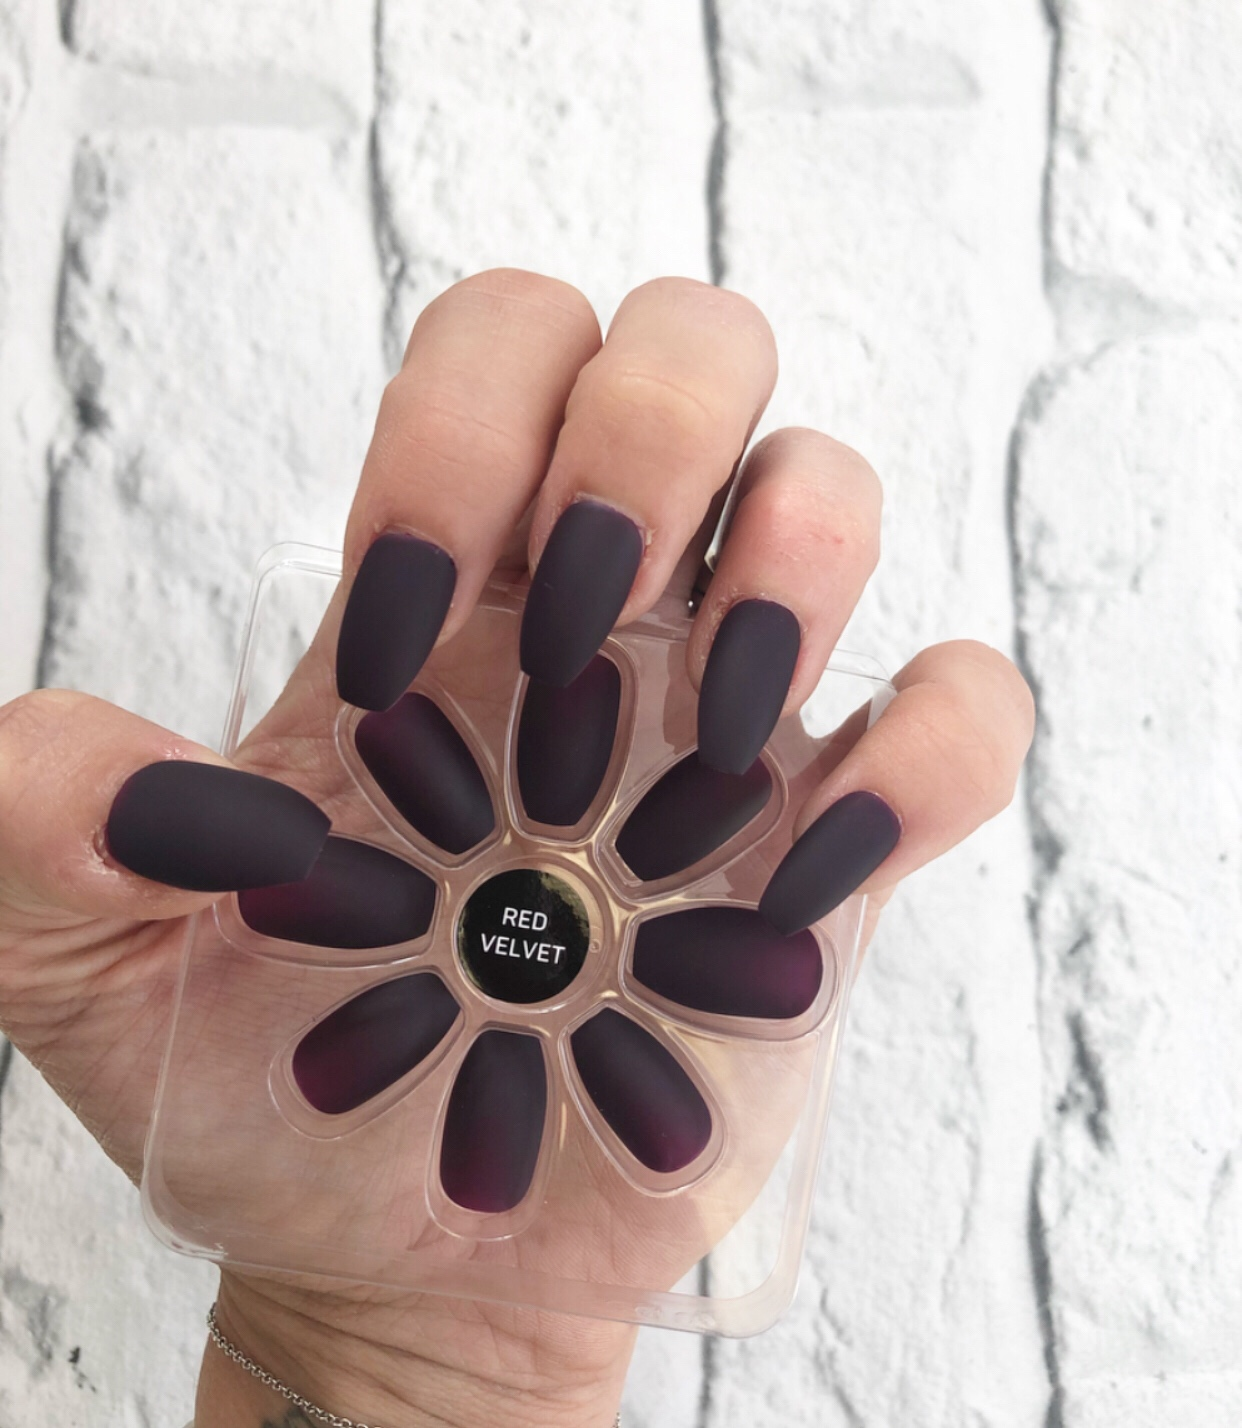 Pointed Red Velvet Matte Elegant Appearance Fashion False Nails Primark Squareletto Nail Care, Manicure & Pedicure Health & Beauty